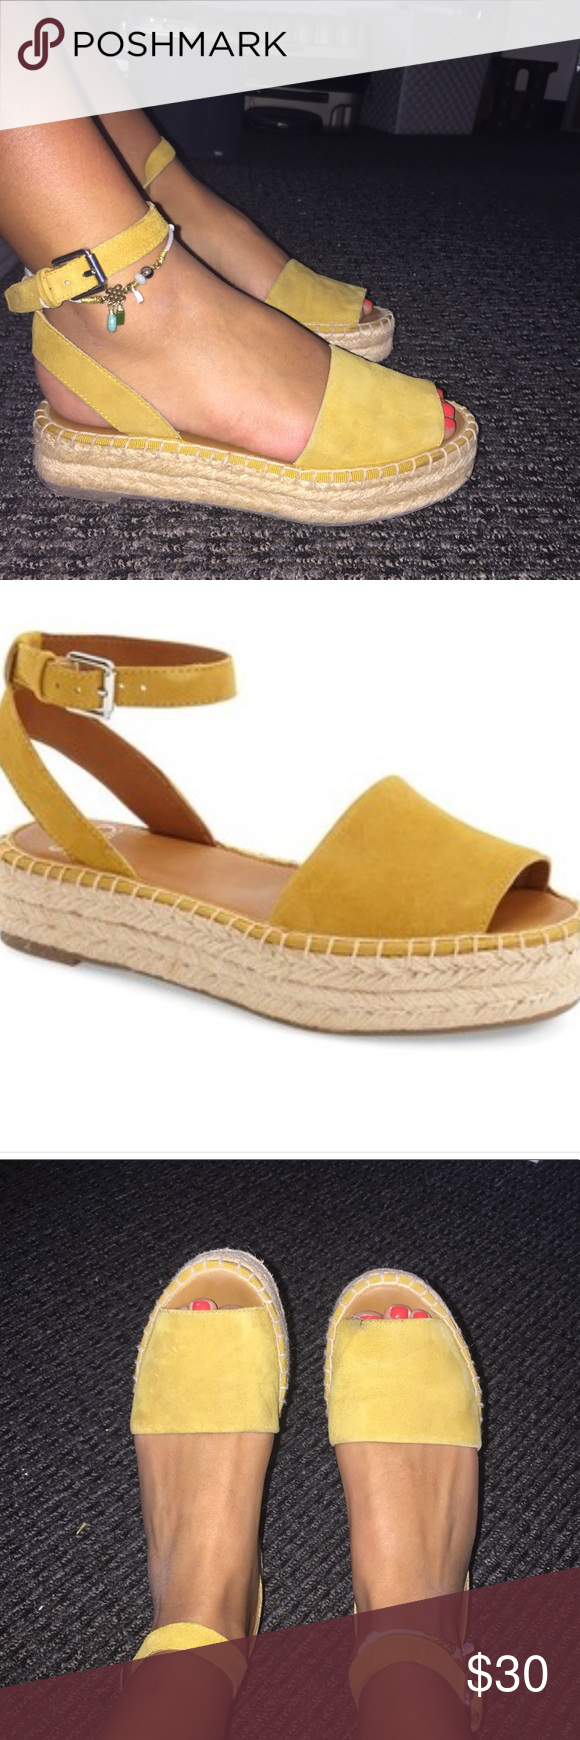 0c1b4536359 Mustard Yellow Franco Sarto Espadrille Sandals I ve worn these quite a few  times. Worn and pre- loved as shown in the photos. Slight cracking on right  toe.